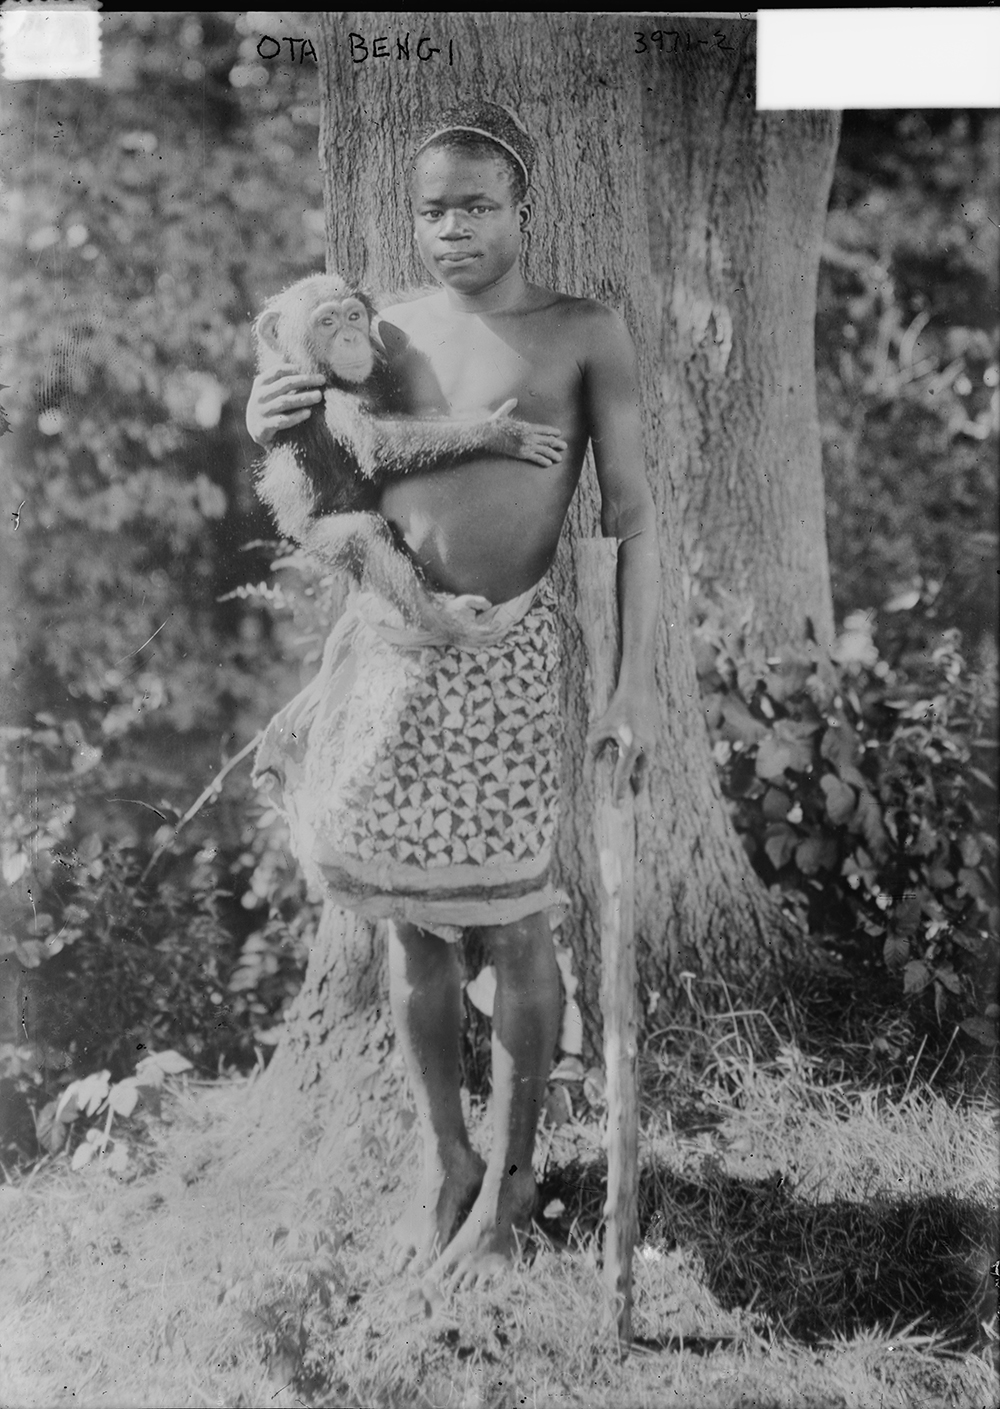 Ota Benga, c. 1915. Photograph by Bain News Service. Library of Congress, Prints and Photographs Division.